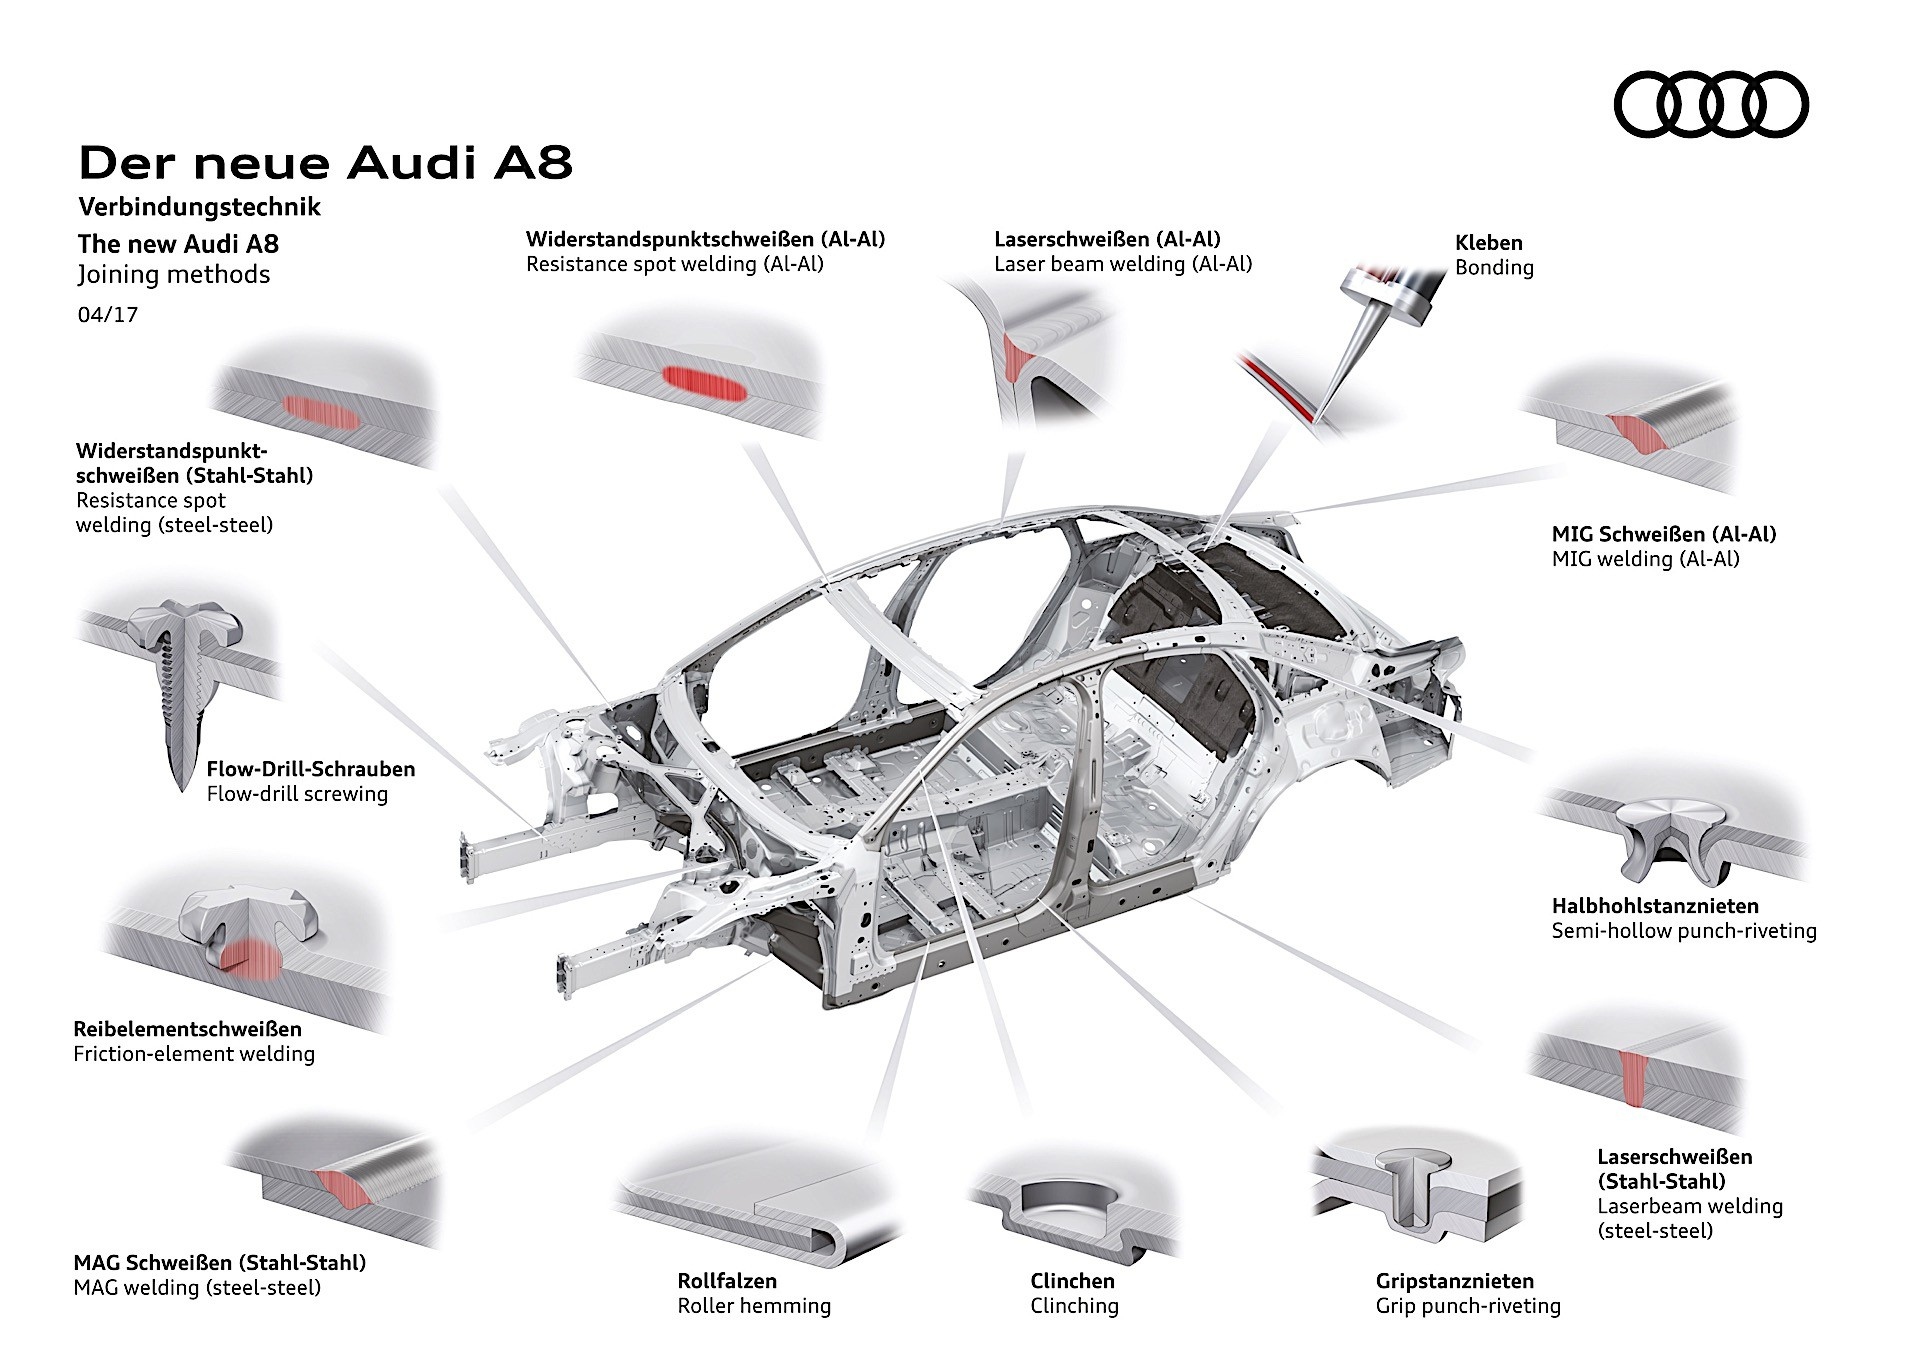 Audi A8 Video Teaser Wants Us To Forget Traffic Jams